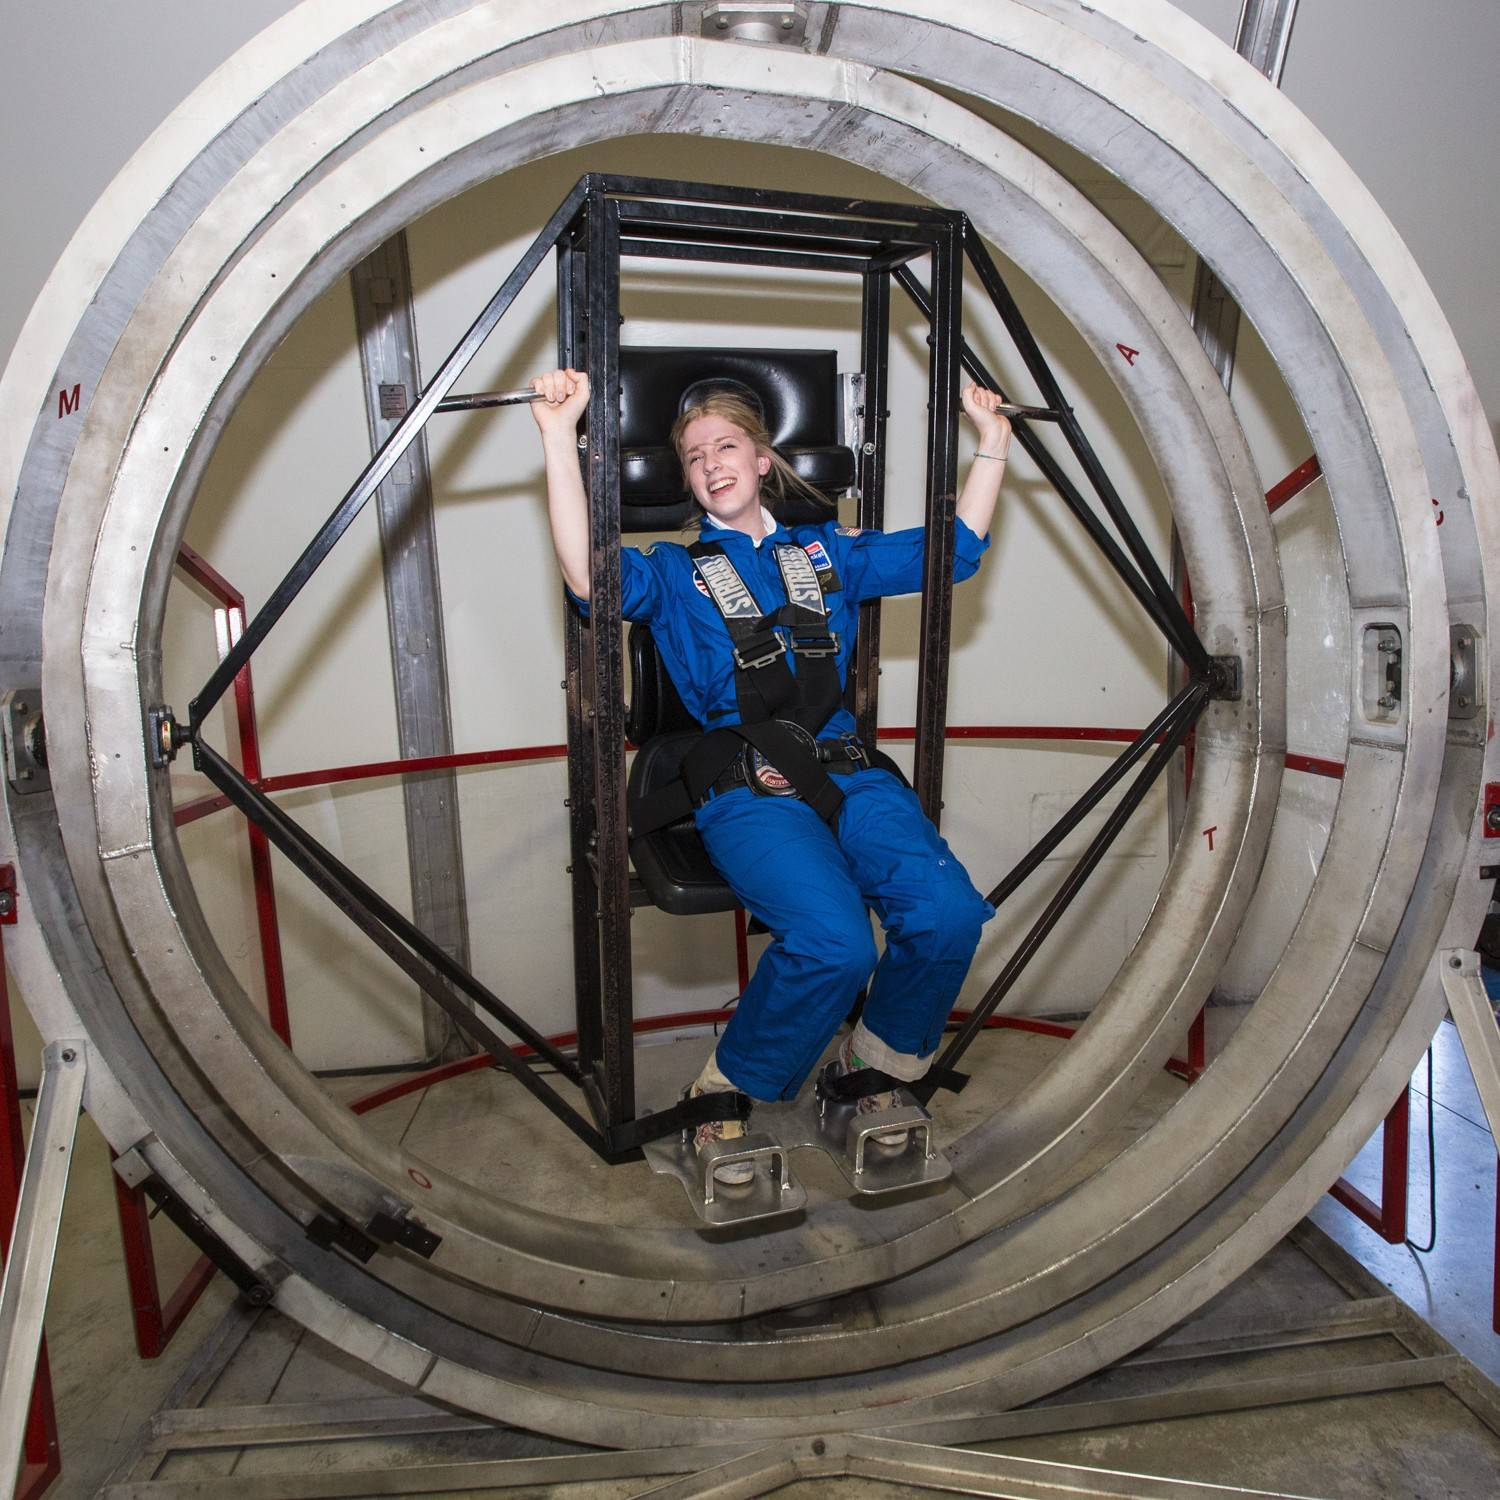 Angela Green of Glen Ellyn is in a Multi-Axis Trainer that simulates the disorientation one would feel in a tumble spin during re-entry into the Earth's atmosphere.